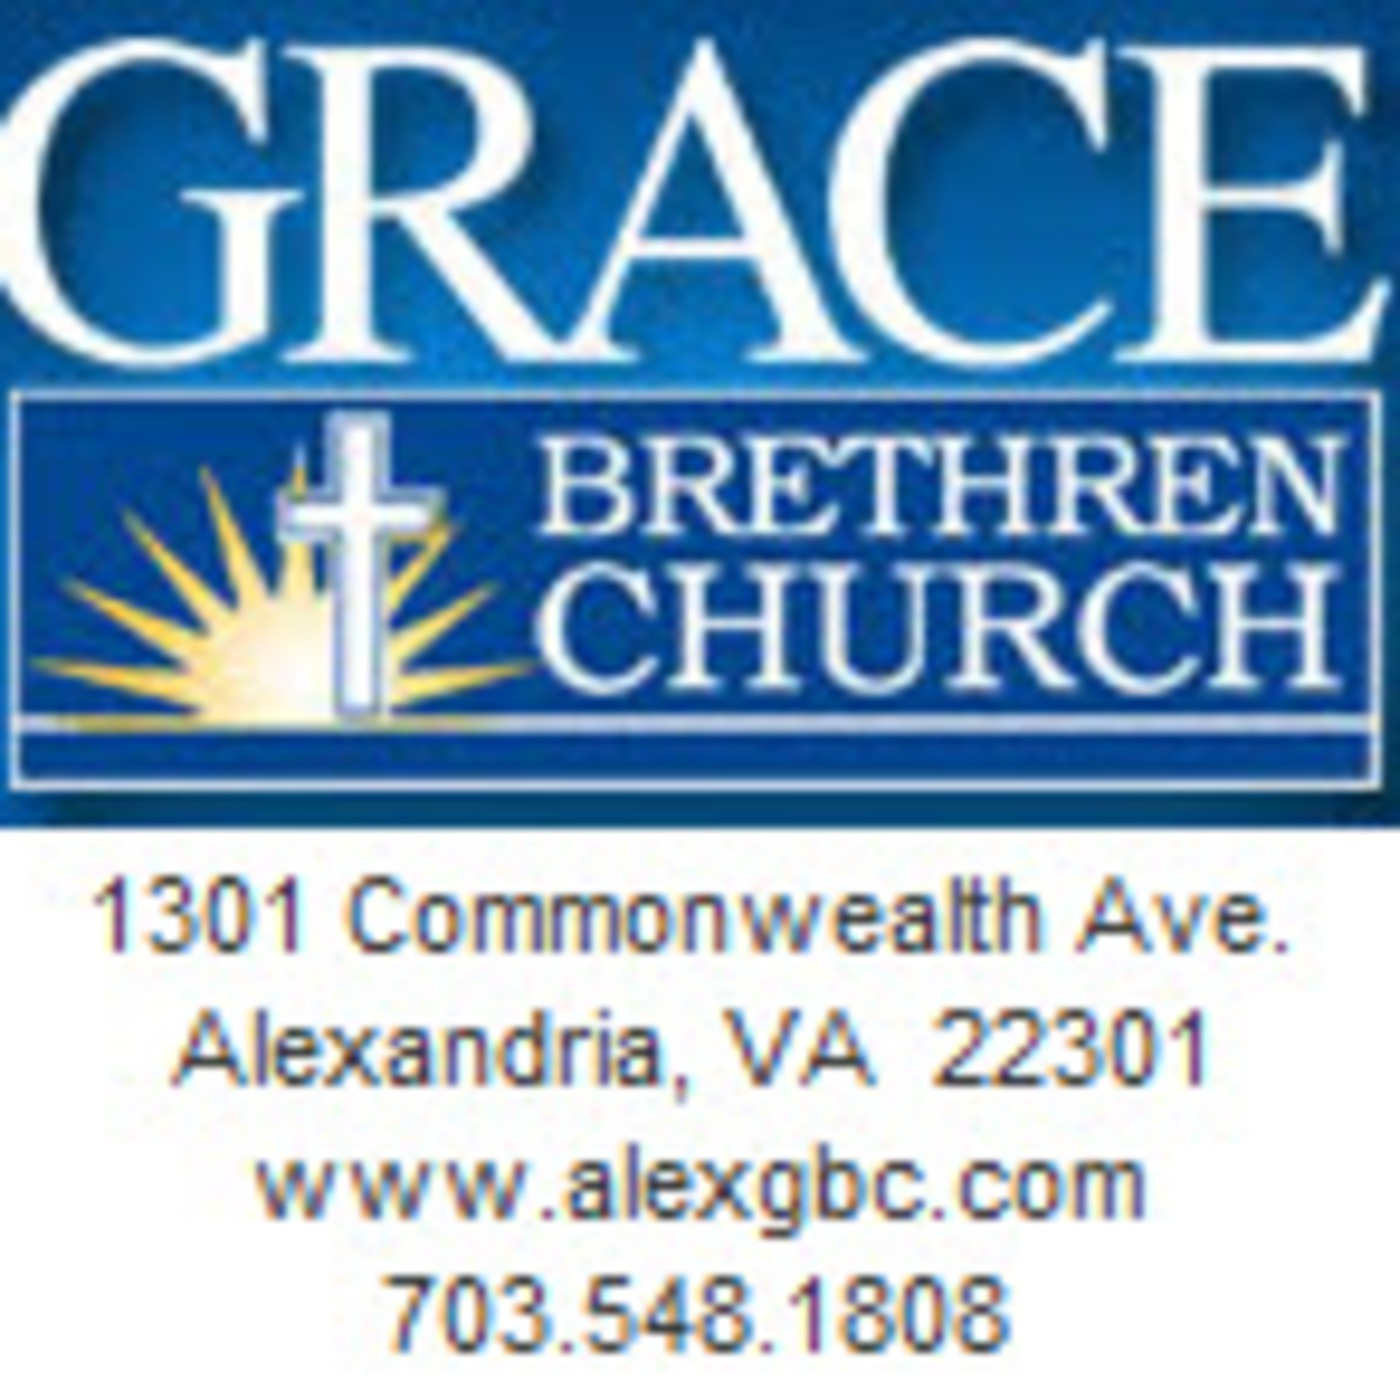 Alexandria Grace Brethren Church